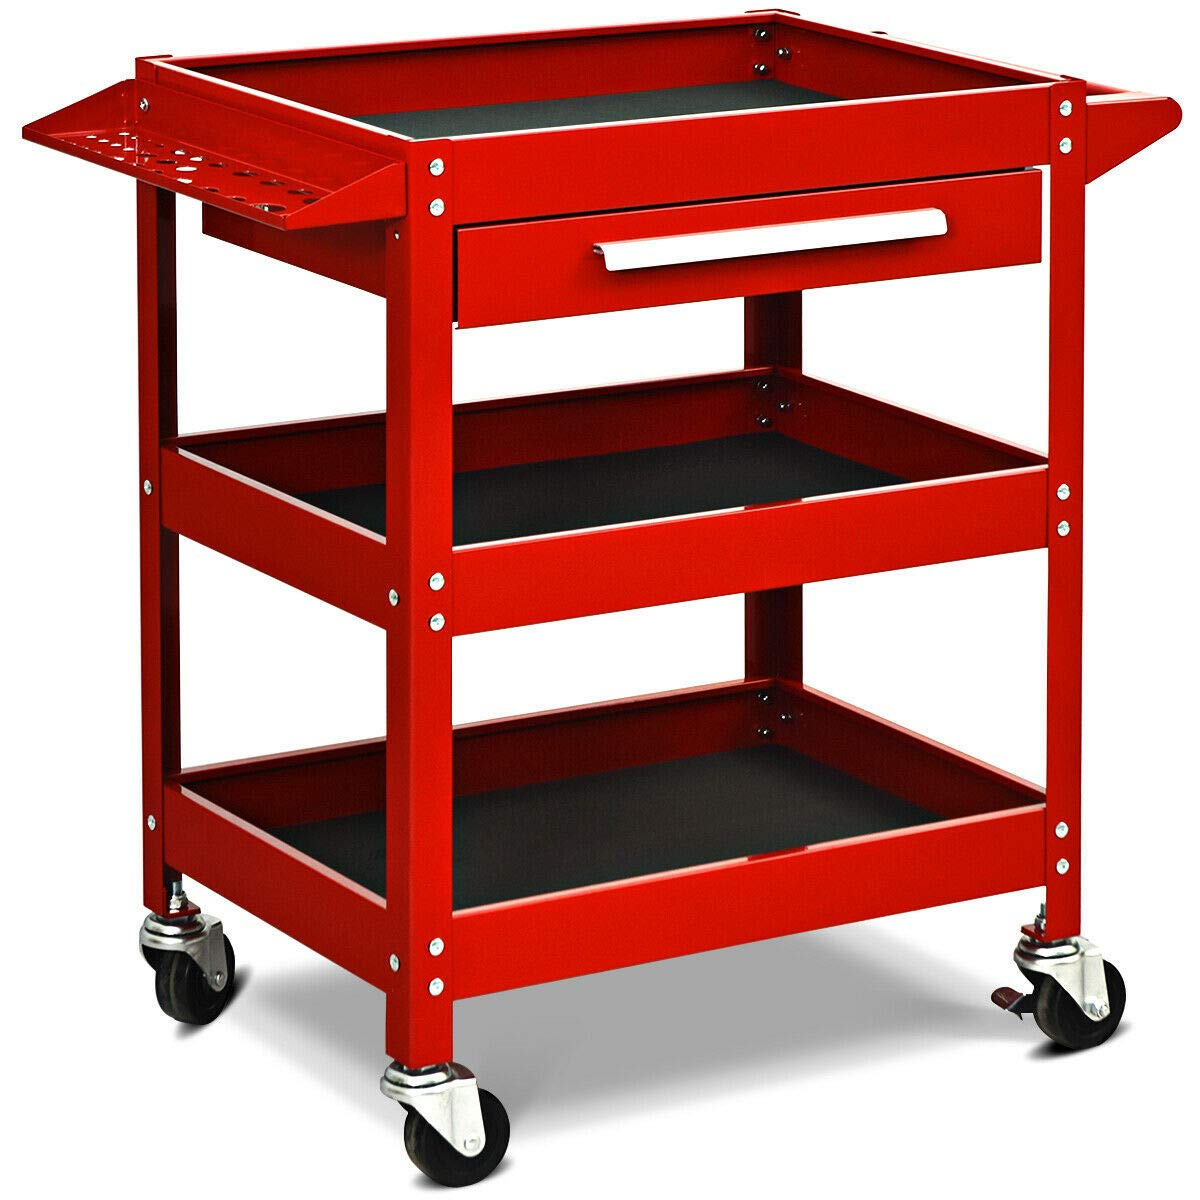 Goplus Service Tool Cart Tool Organizers, 330 LBS Capacity 3-Tray Rolling Utility Cart Trolley with Drawer, Industrial Commercial Service Cart, Mobile Storage Cabinet Organizer Dollies by Goplus